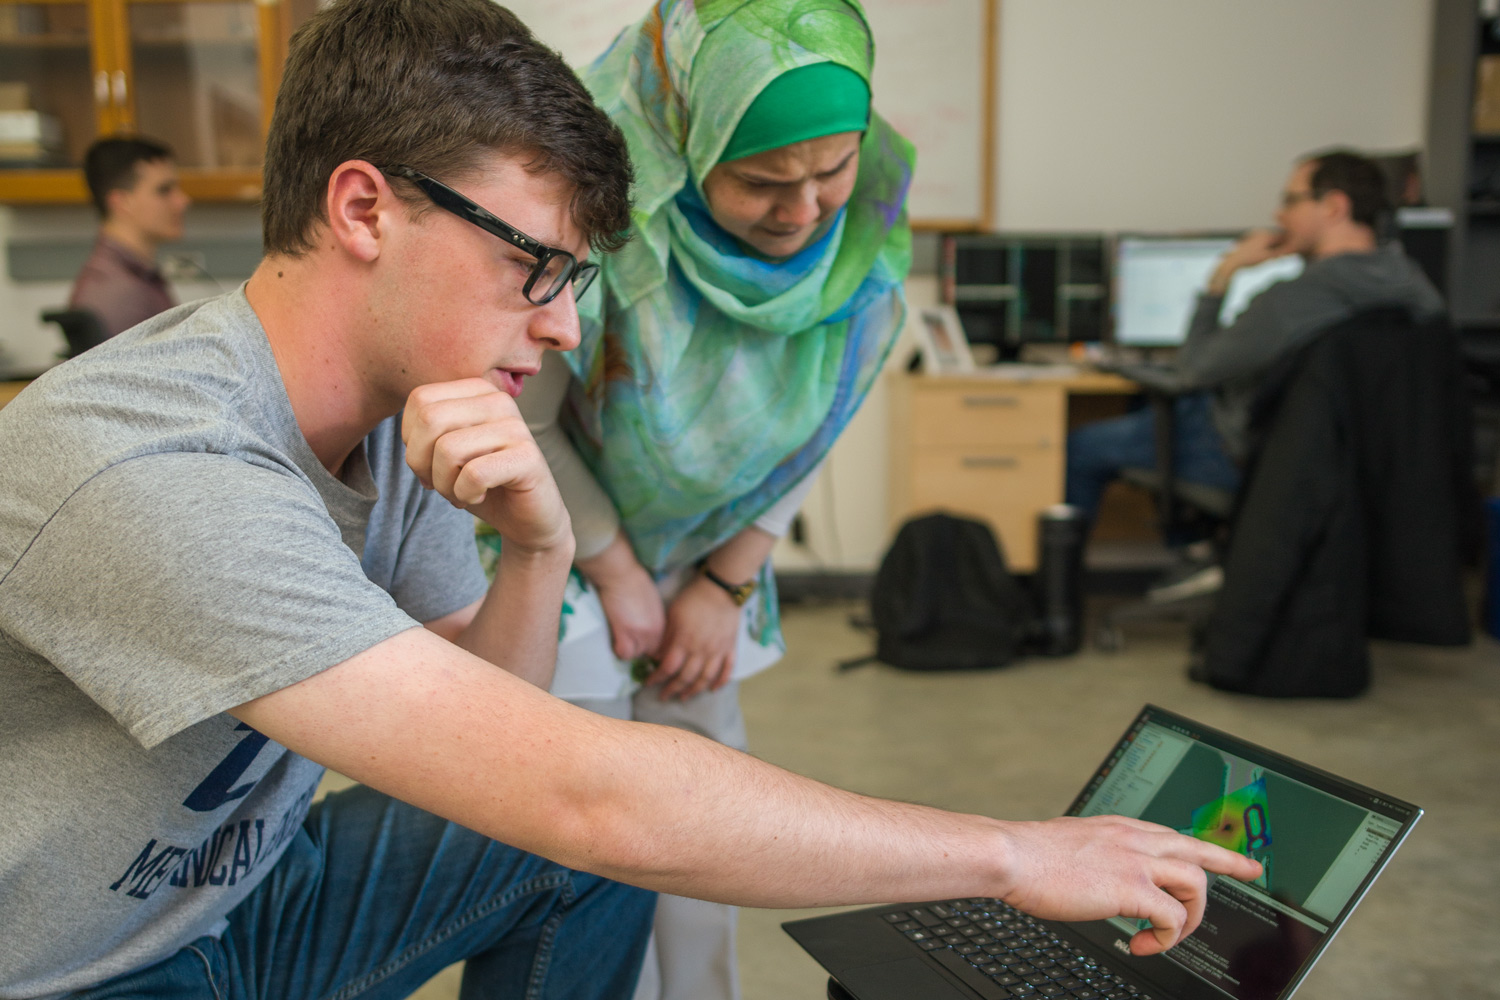 Student and faculty member conducting research